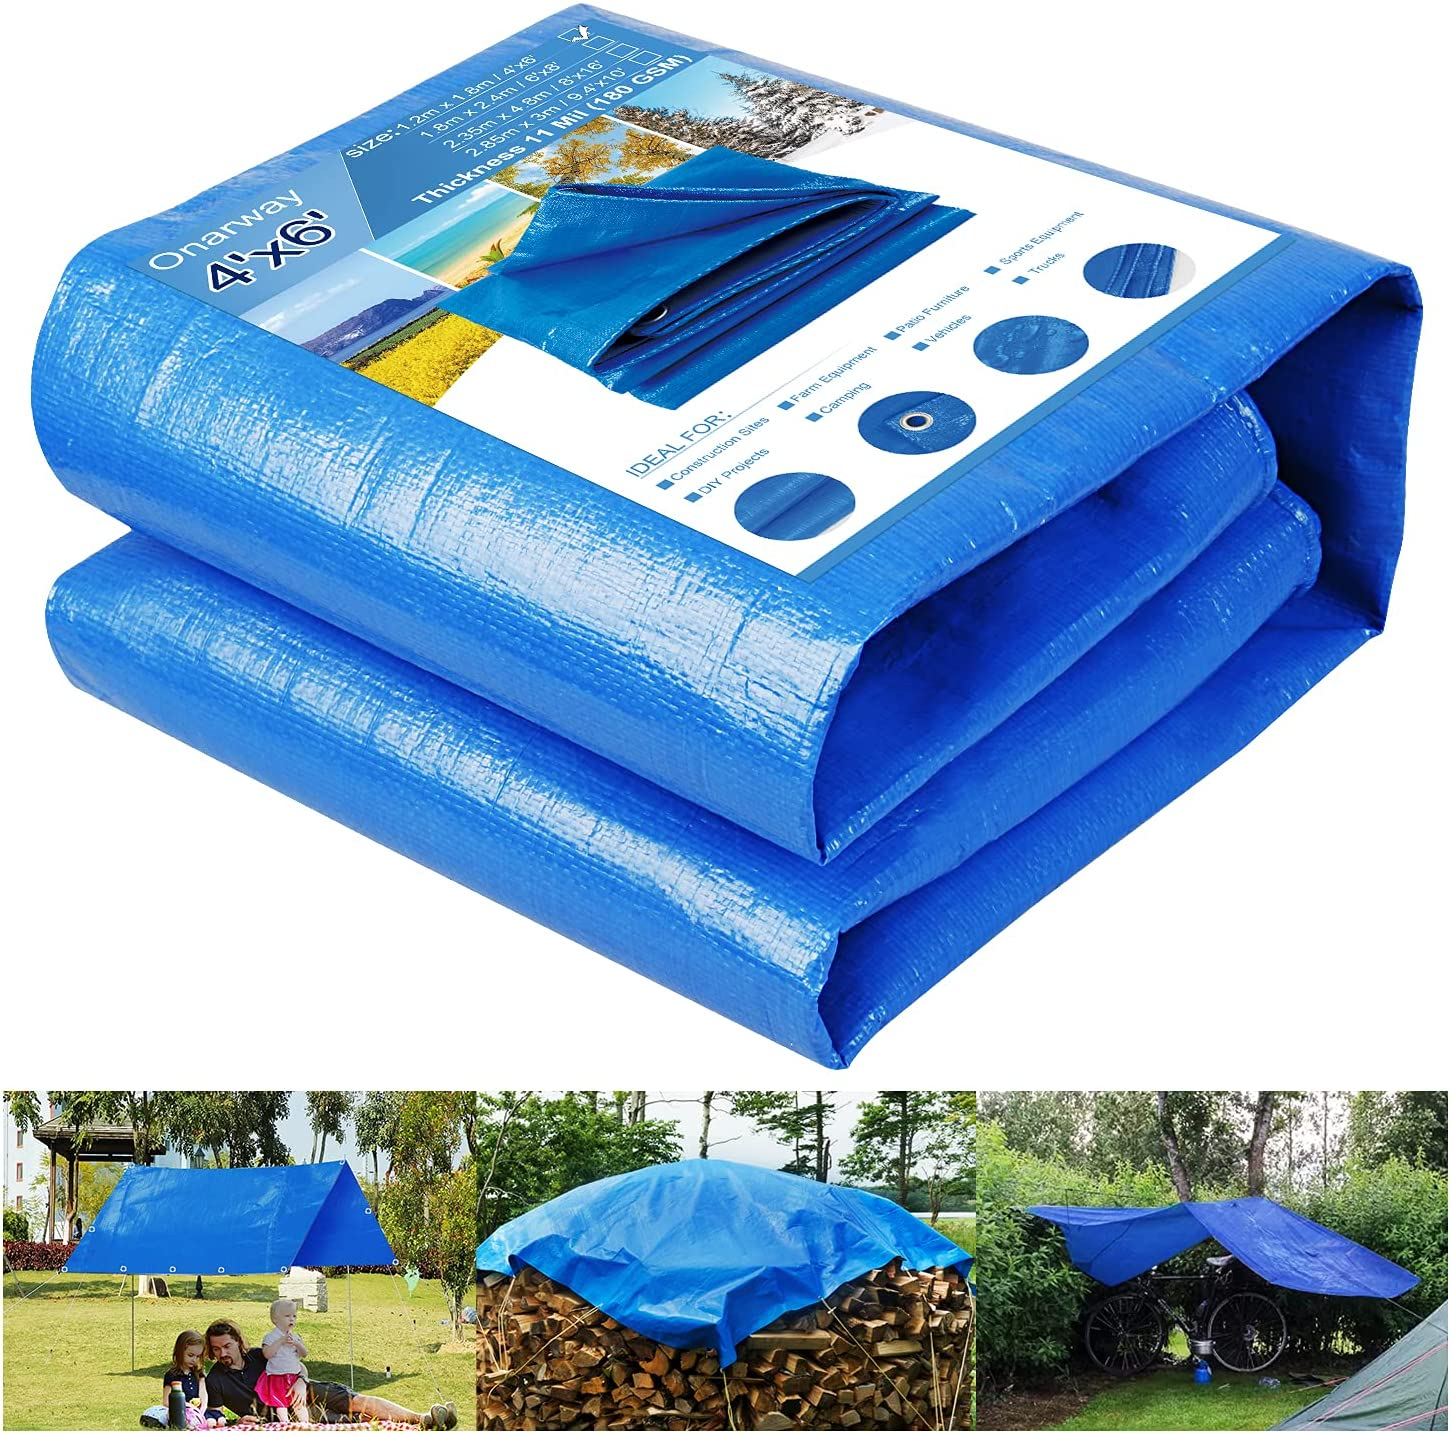 Onarway Tarp 4' X 6' Thicken 11 Mil Heavy Duty Waterproof Tarpaulin with Grommets, for Outdoor Shelter, Roof Cover, Garden Shade, Camping, Ground Sheet